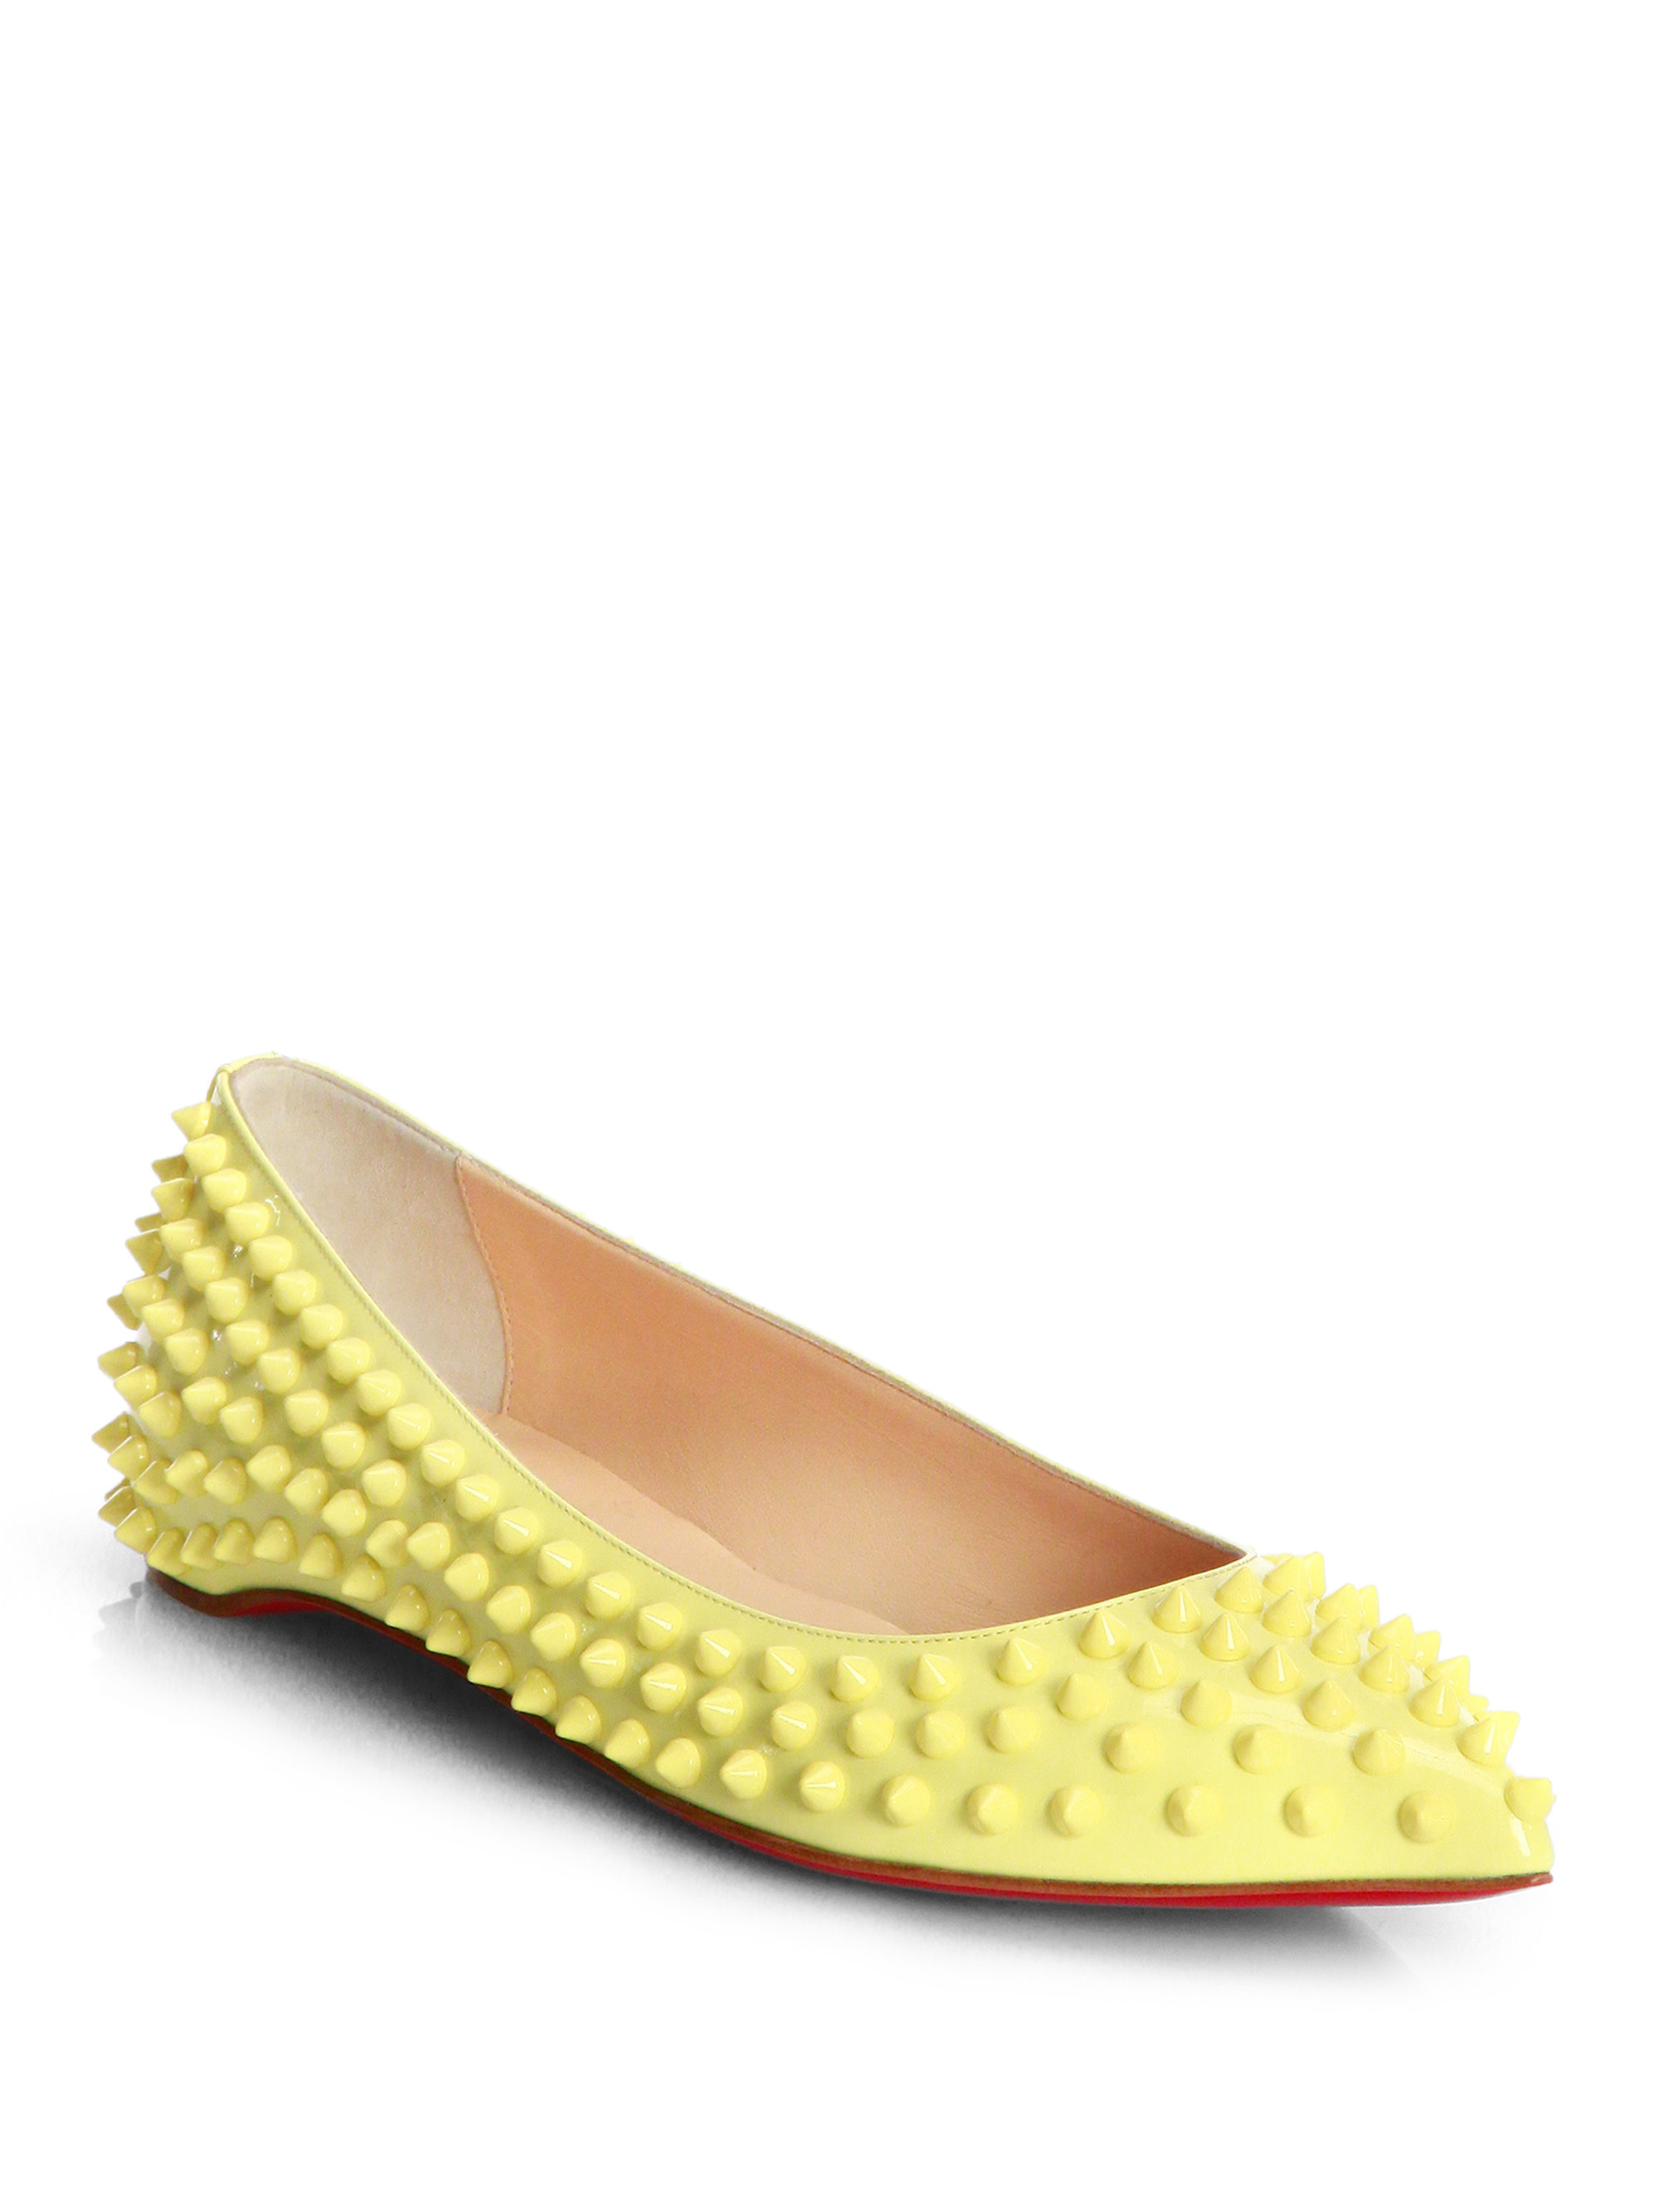 7481cdbe70ed Lyst - Christian Louboutin Pigalle Spiked Patent Leather Flats in Yellow